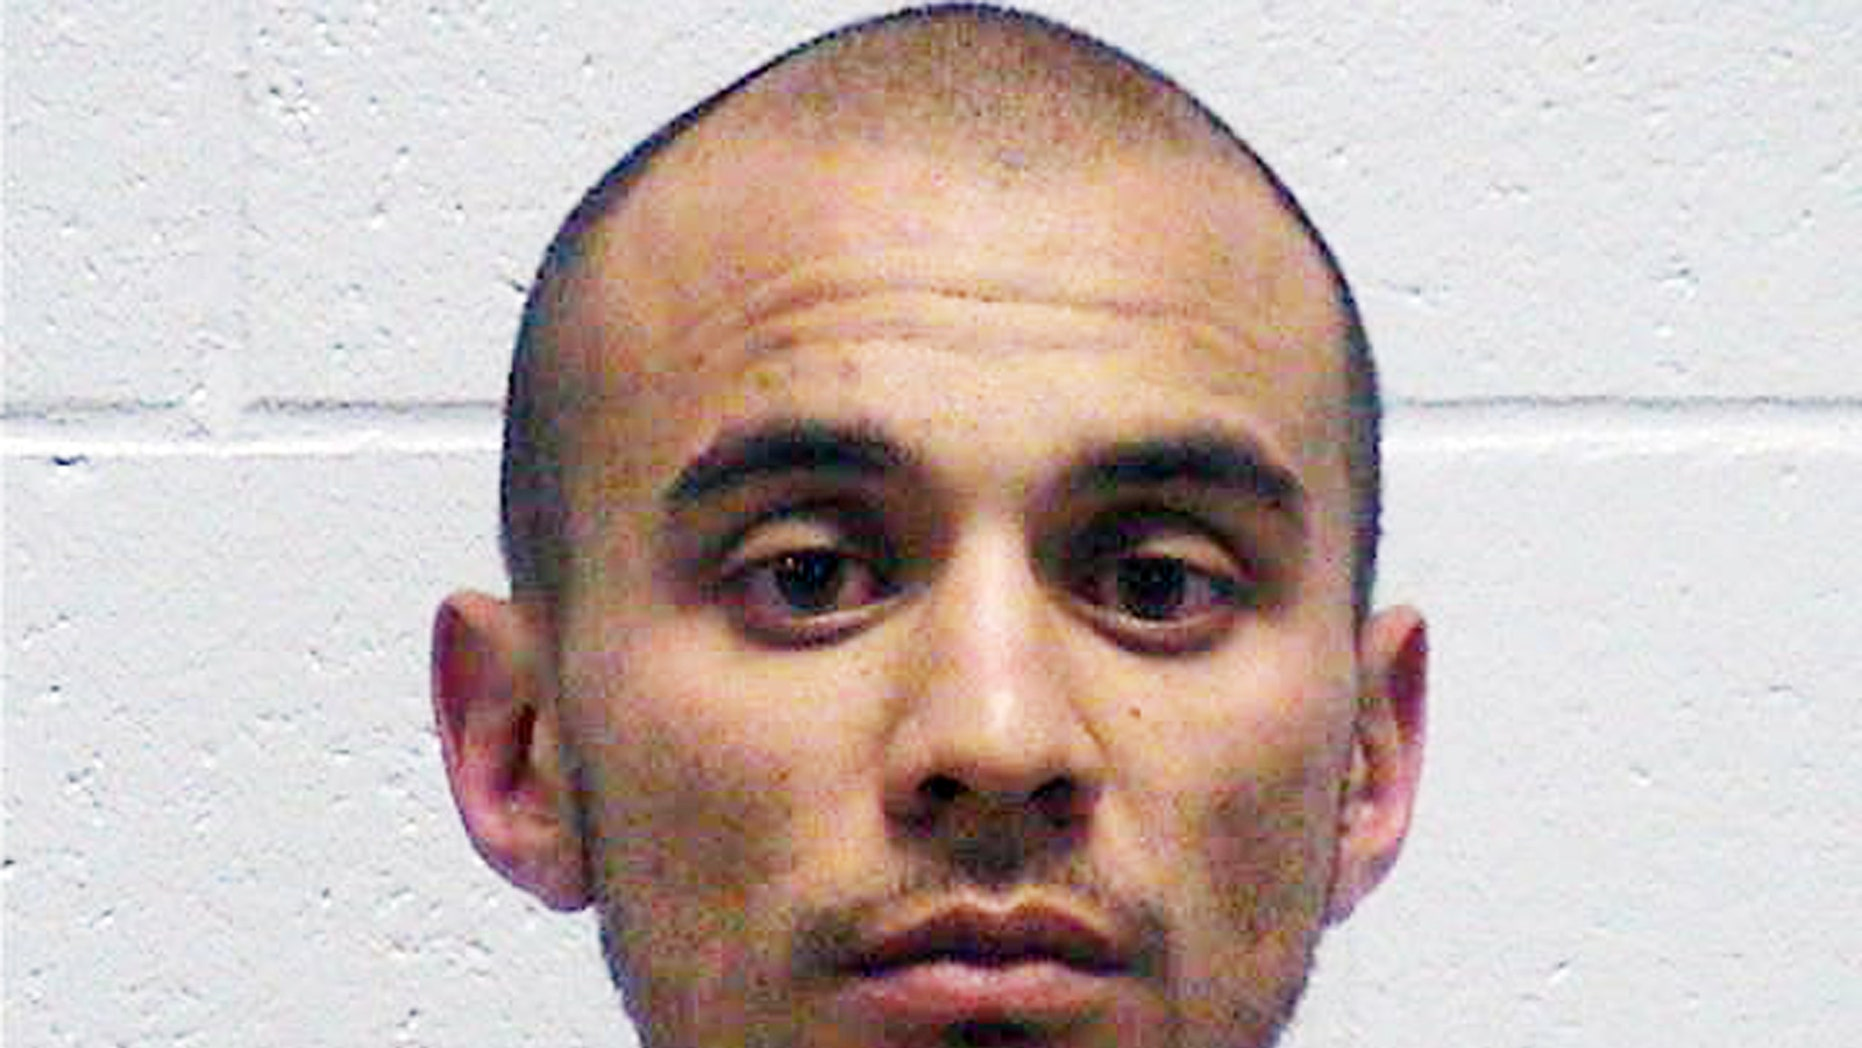 This image provided by Lyon County Sheriff's Office shows Jeremiah Bean, a A 25-year-old person of interest who has been arrested after five people were found dead in one morning in northern Nevada. Bean was arrested Monday, April 13, 2013, on suspicion of burglary after he was found with items from one of the crime scenes. (AP Photo/Lyon County Sheriff's Office)